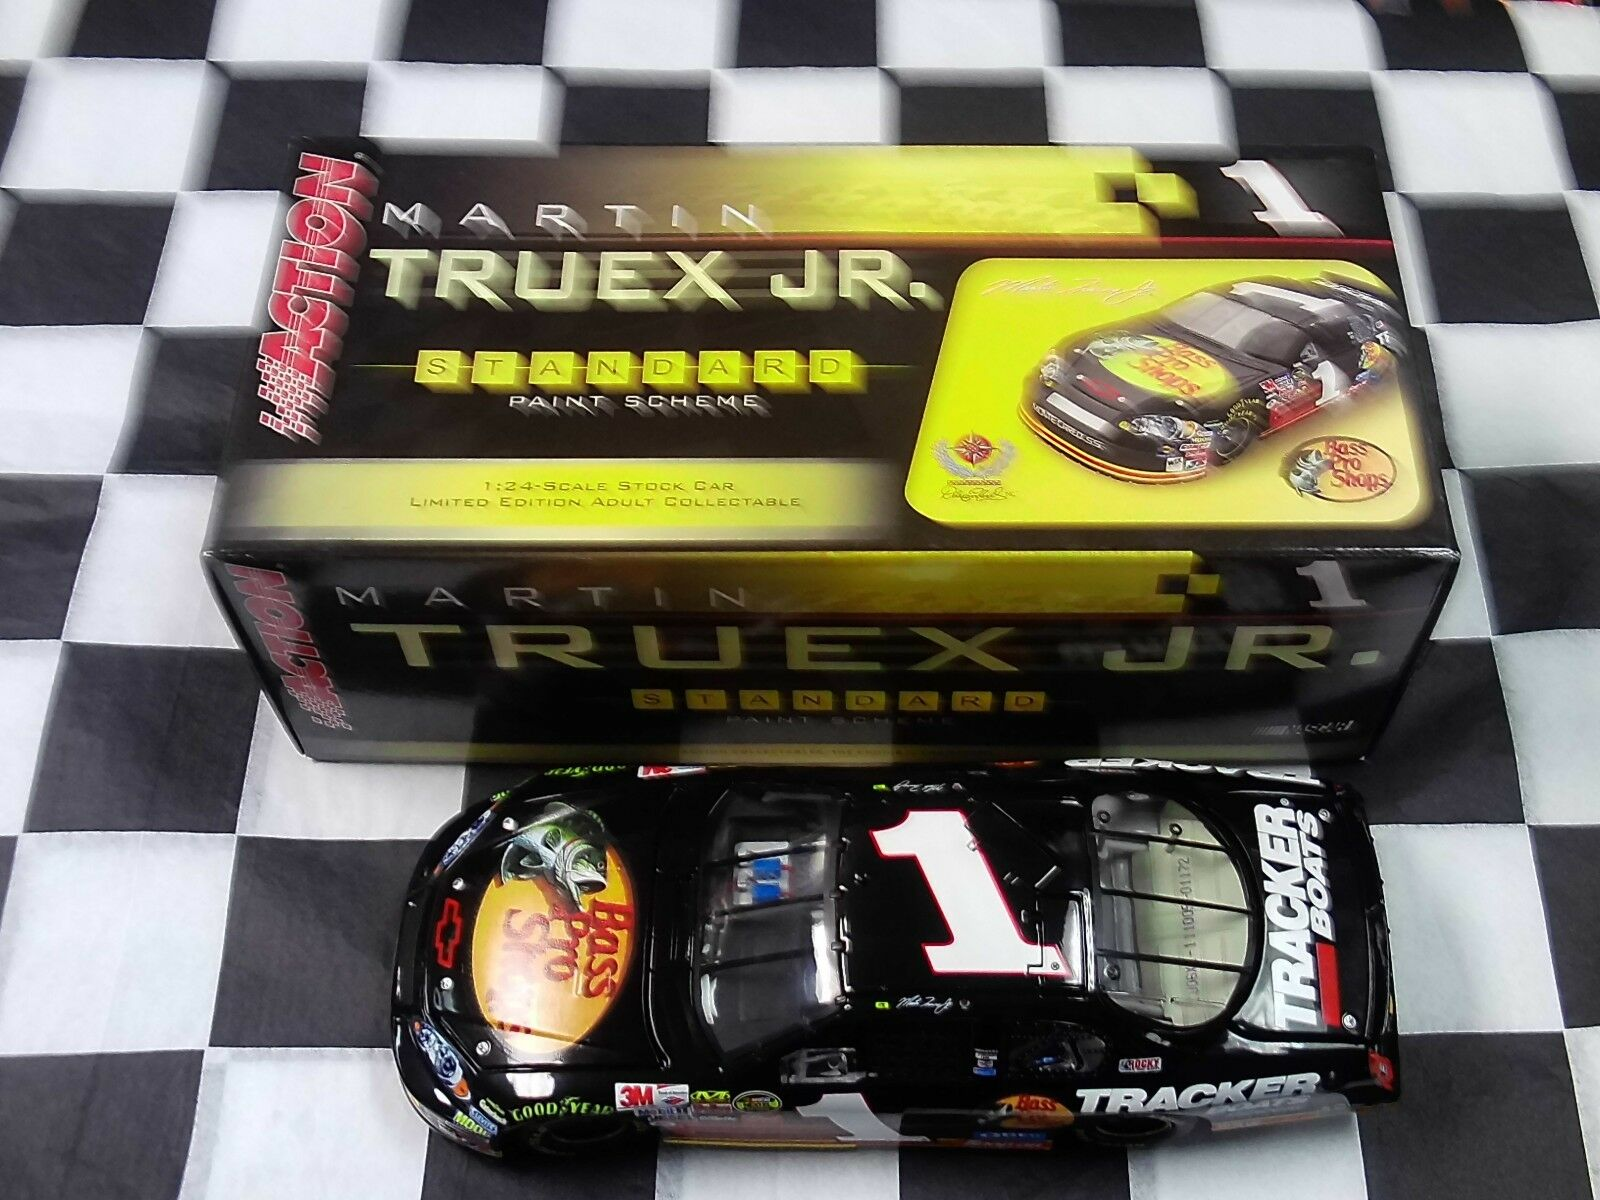 Martin Truex Jr  1 Bass Pro Shops 2006 Monte Carlo Action Car 1:24 111005 NASCAR